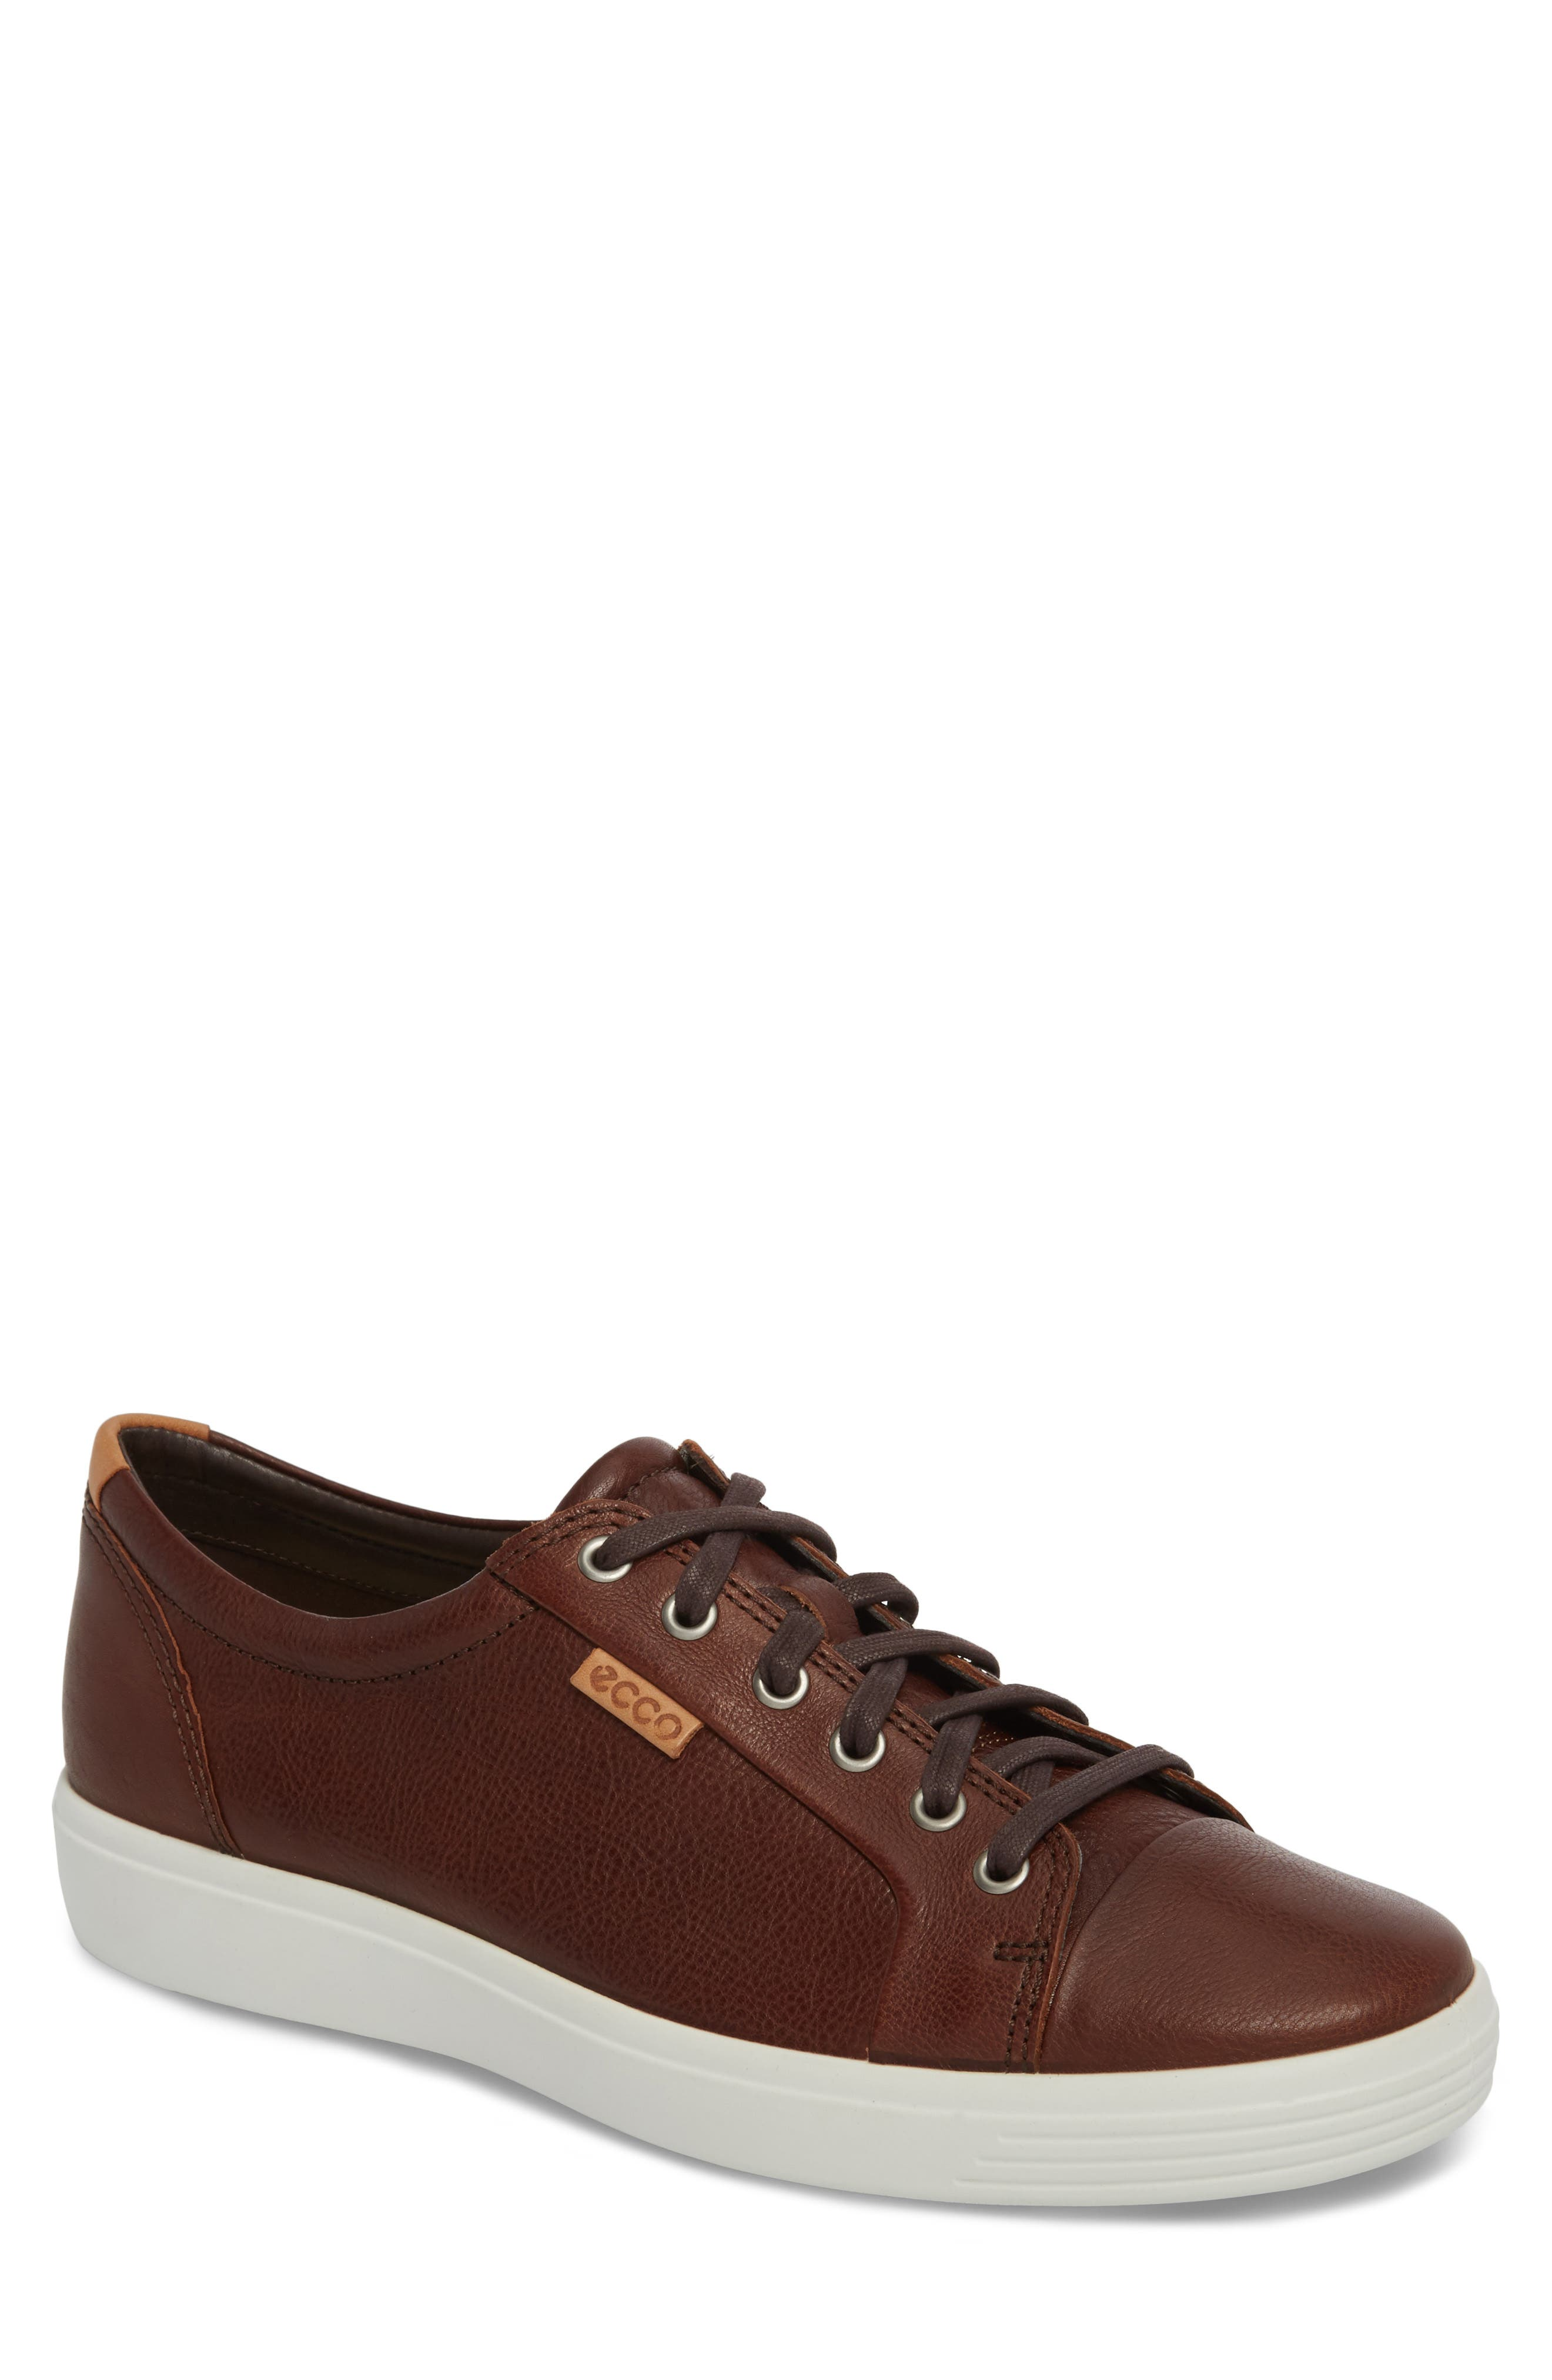 Soft VII Lace-Up Sneaker,                             Main thumbnail 6, color,